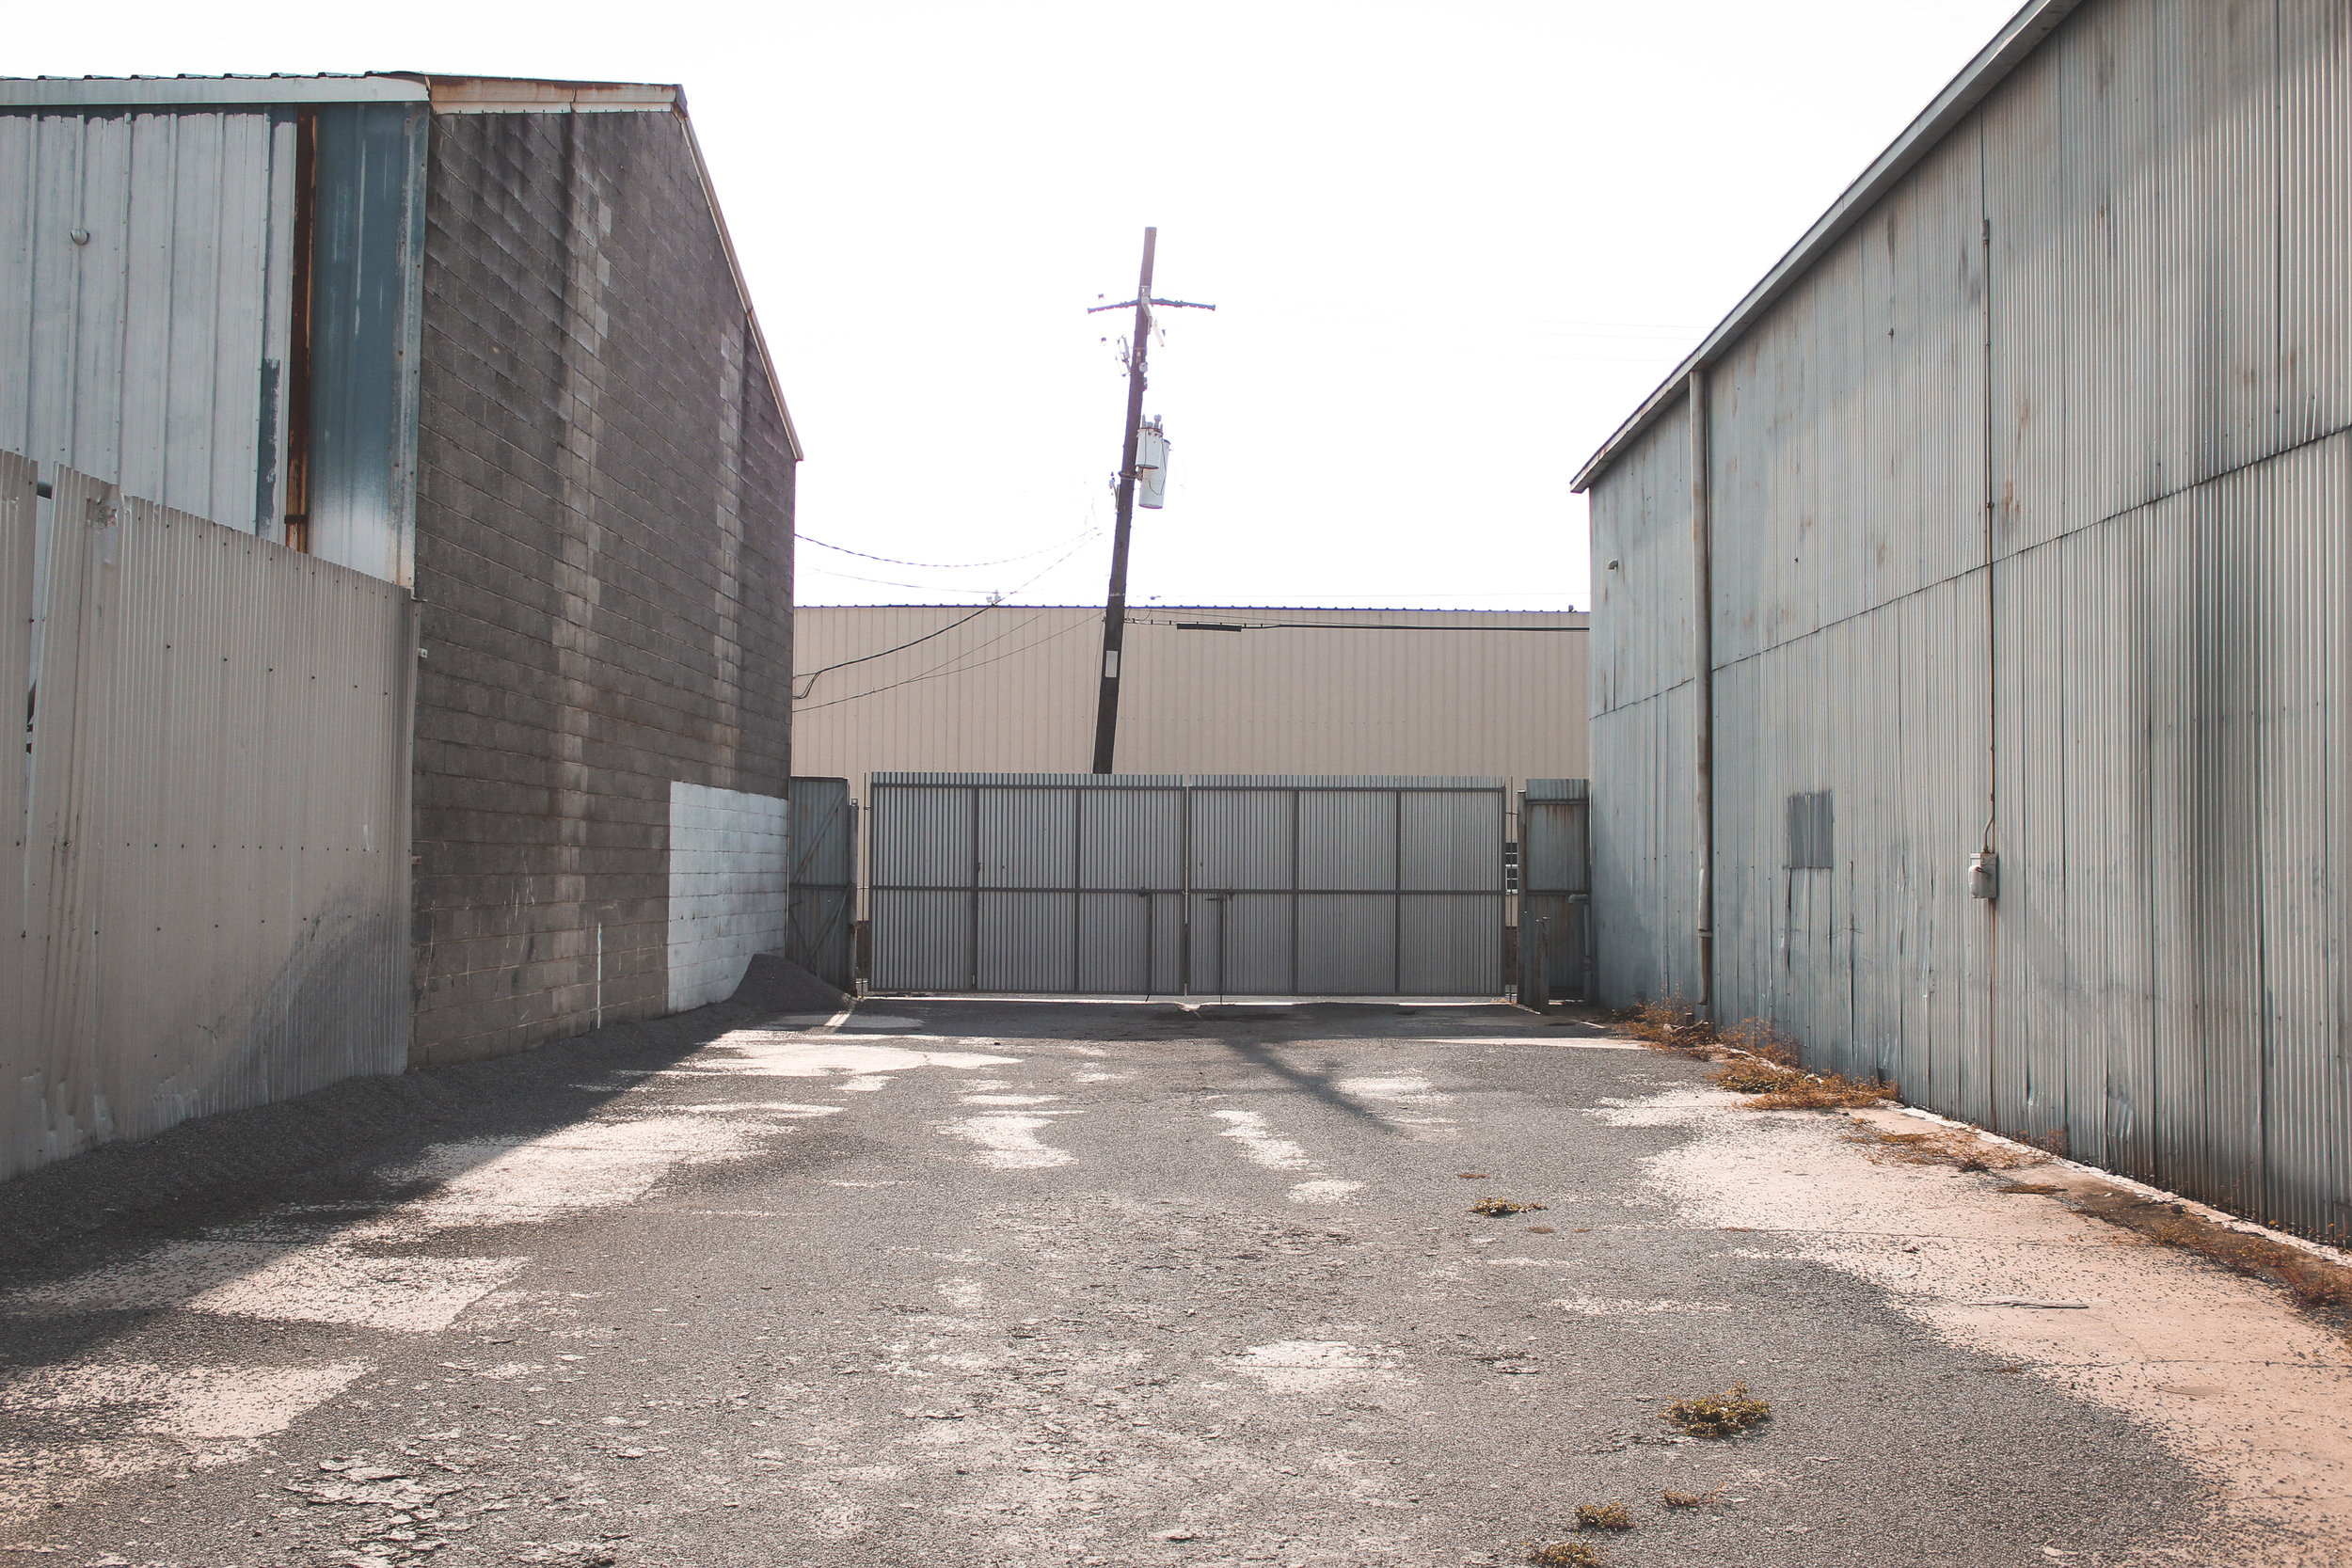 New Orleans_New Brewery_Miel Brewery_Construction_4.jpg